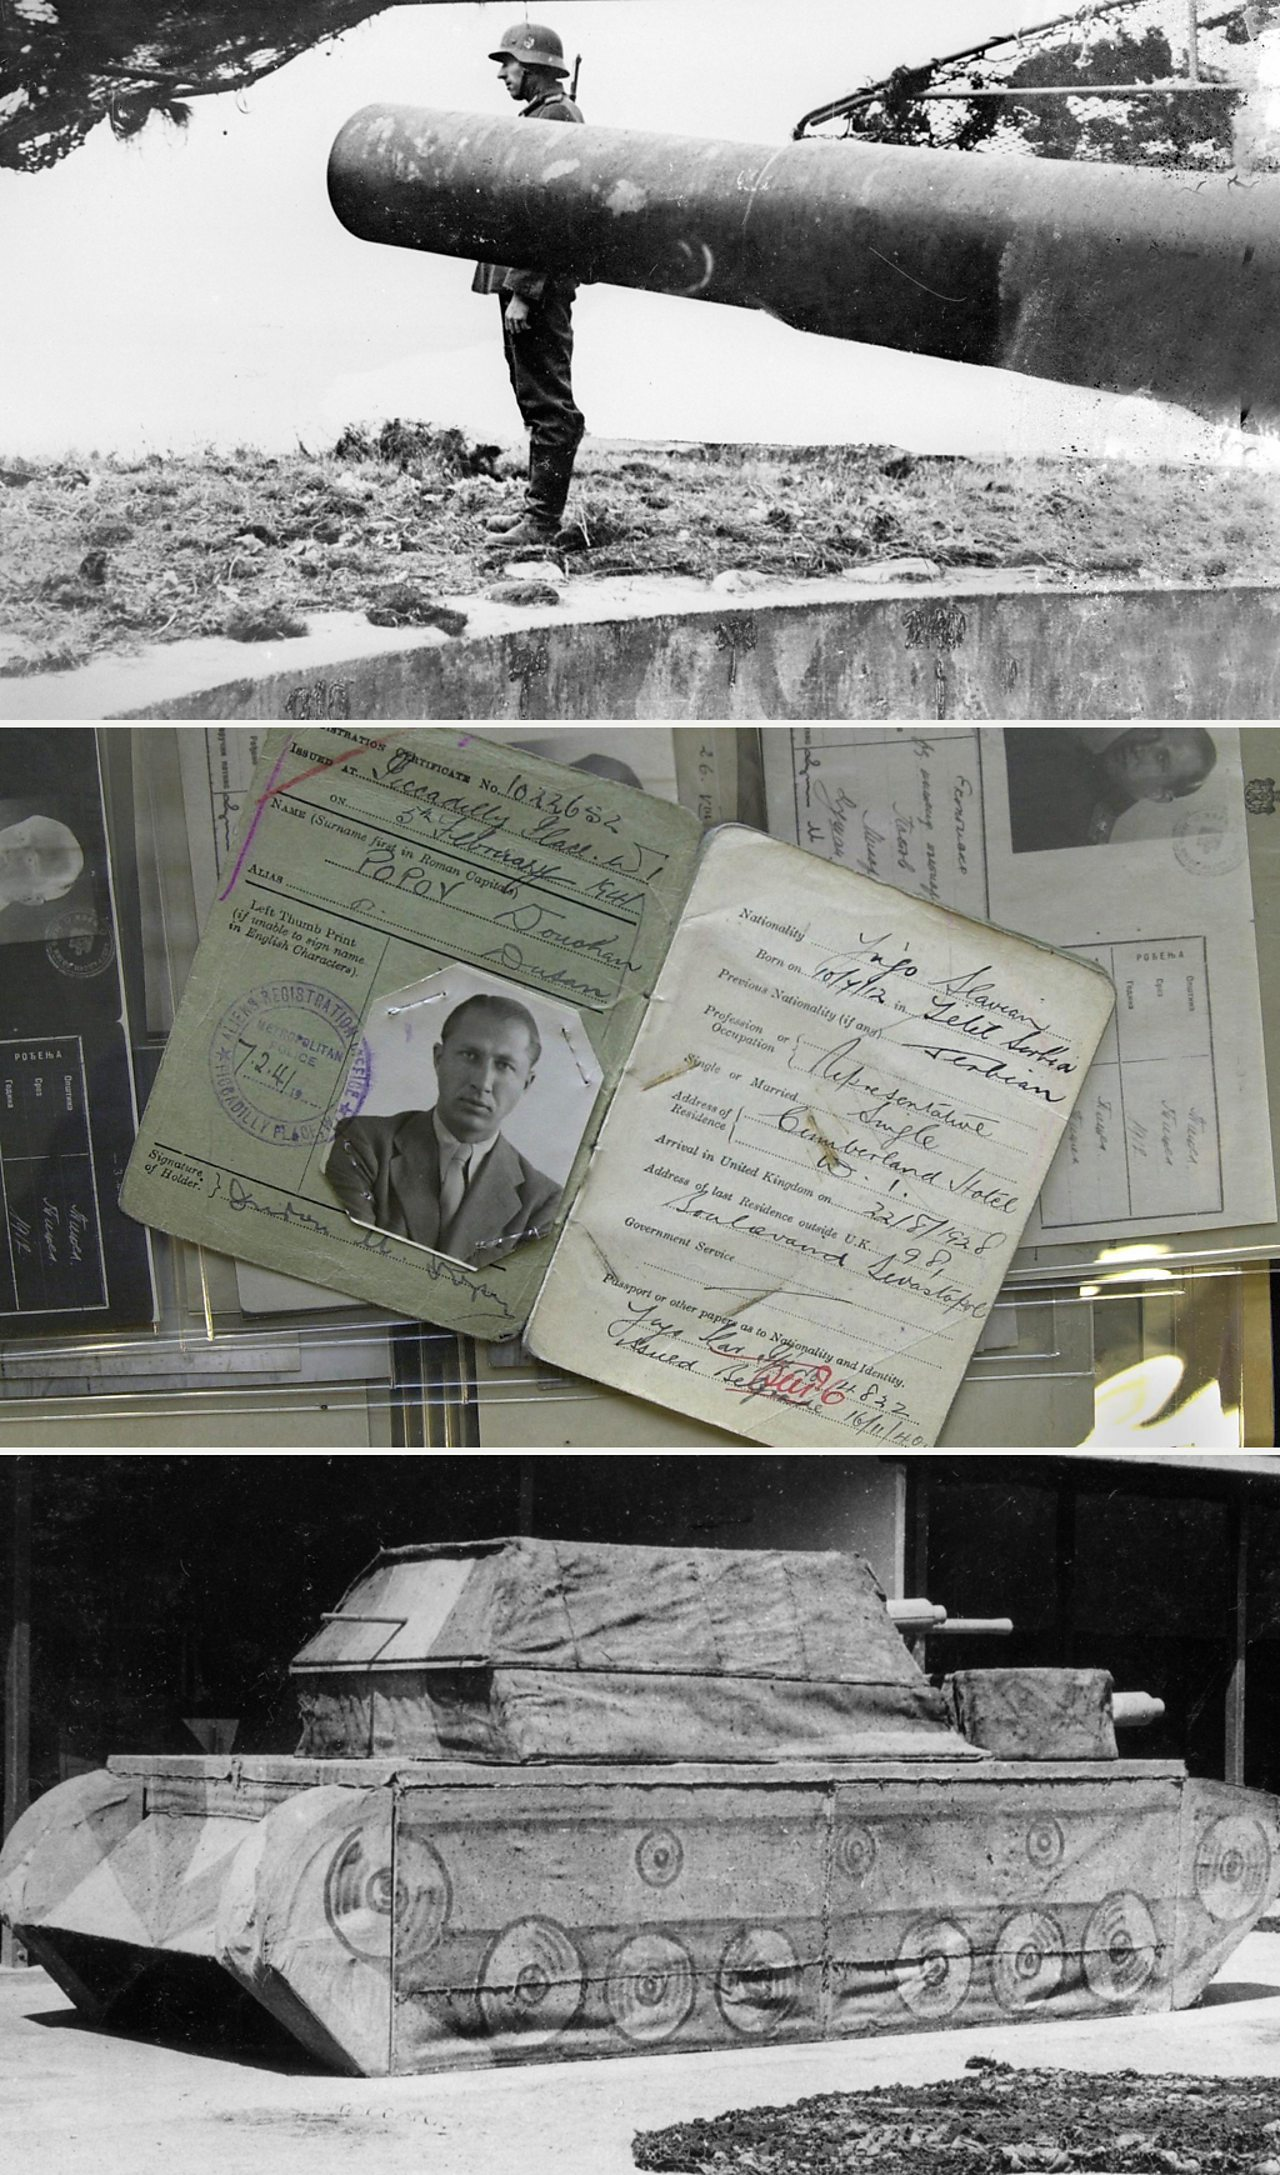 From top: The Atlantic wall, spy documents and a fake tank